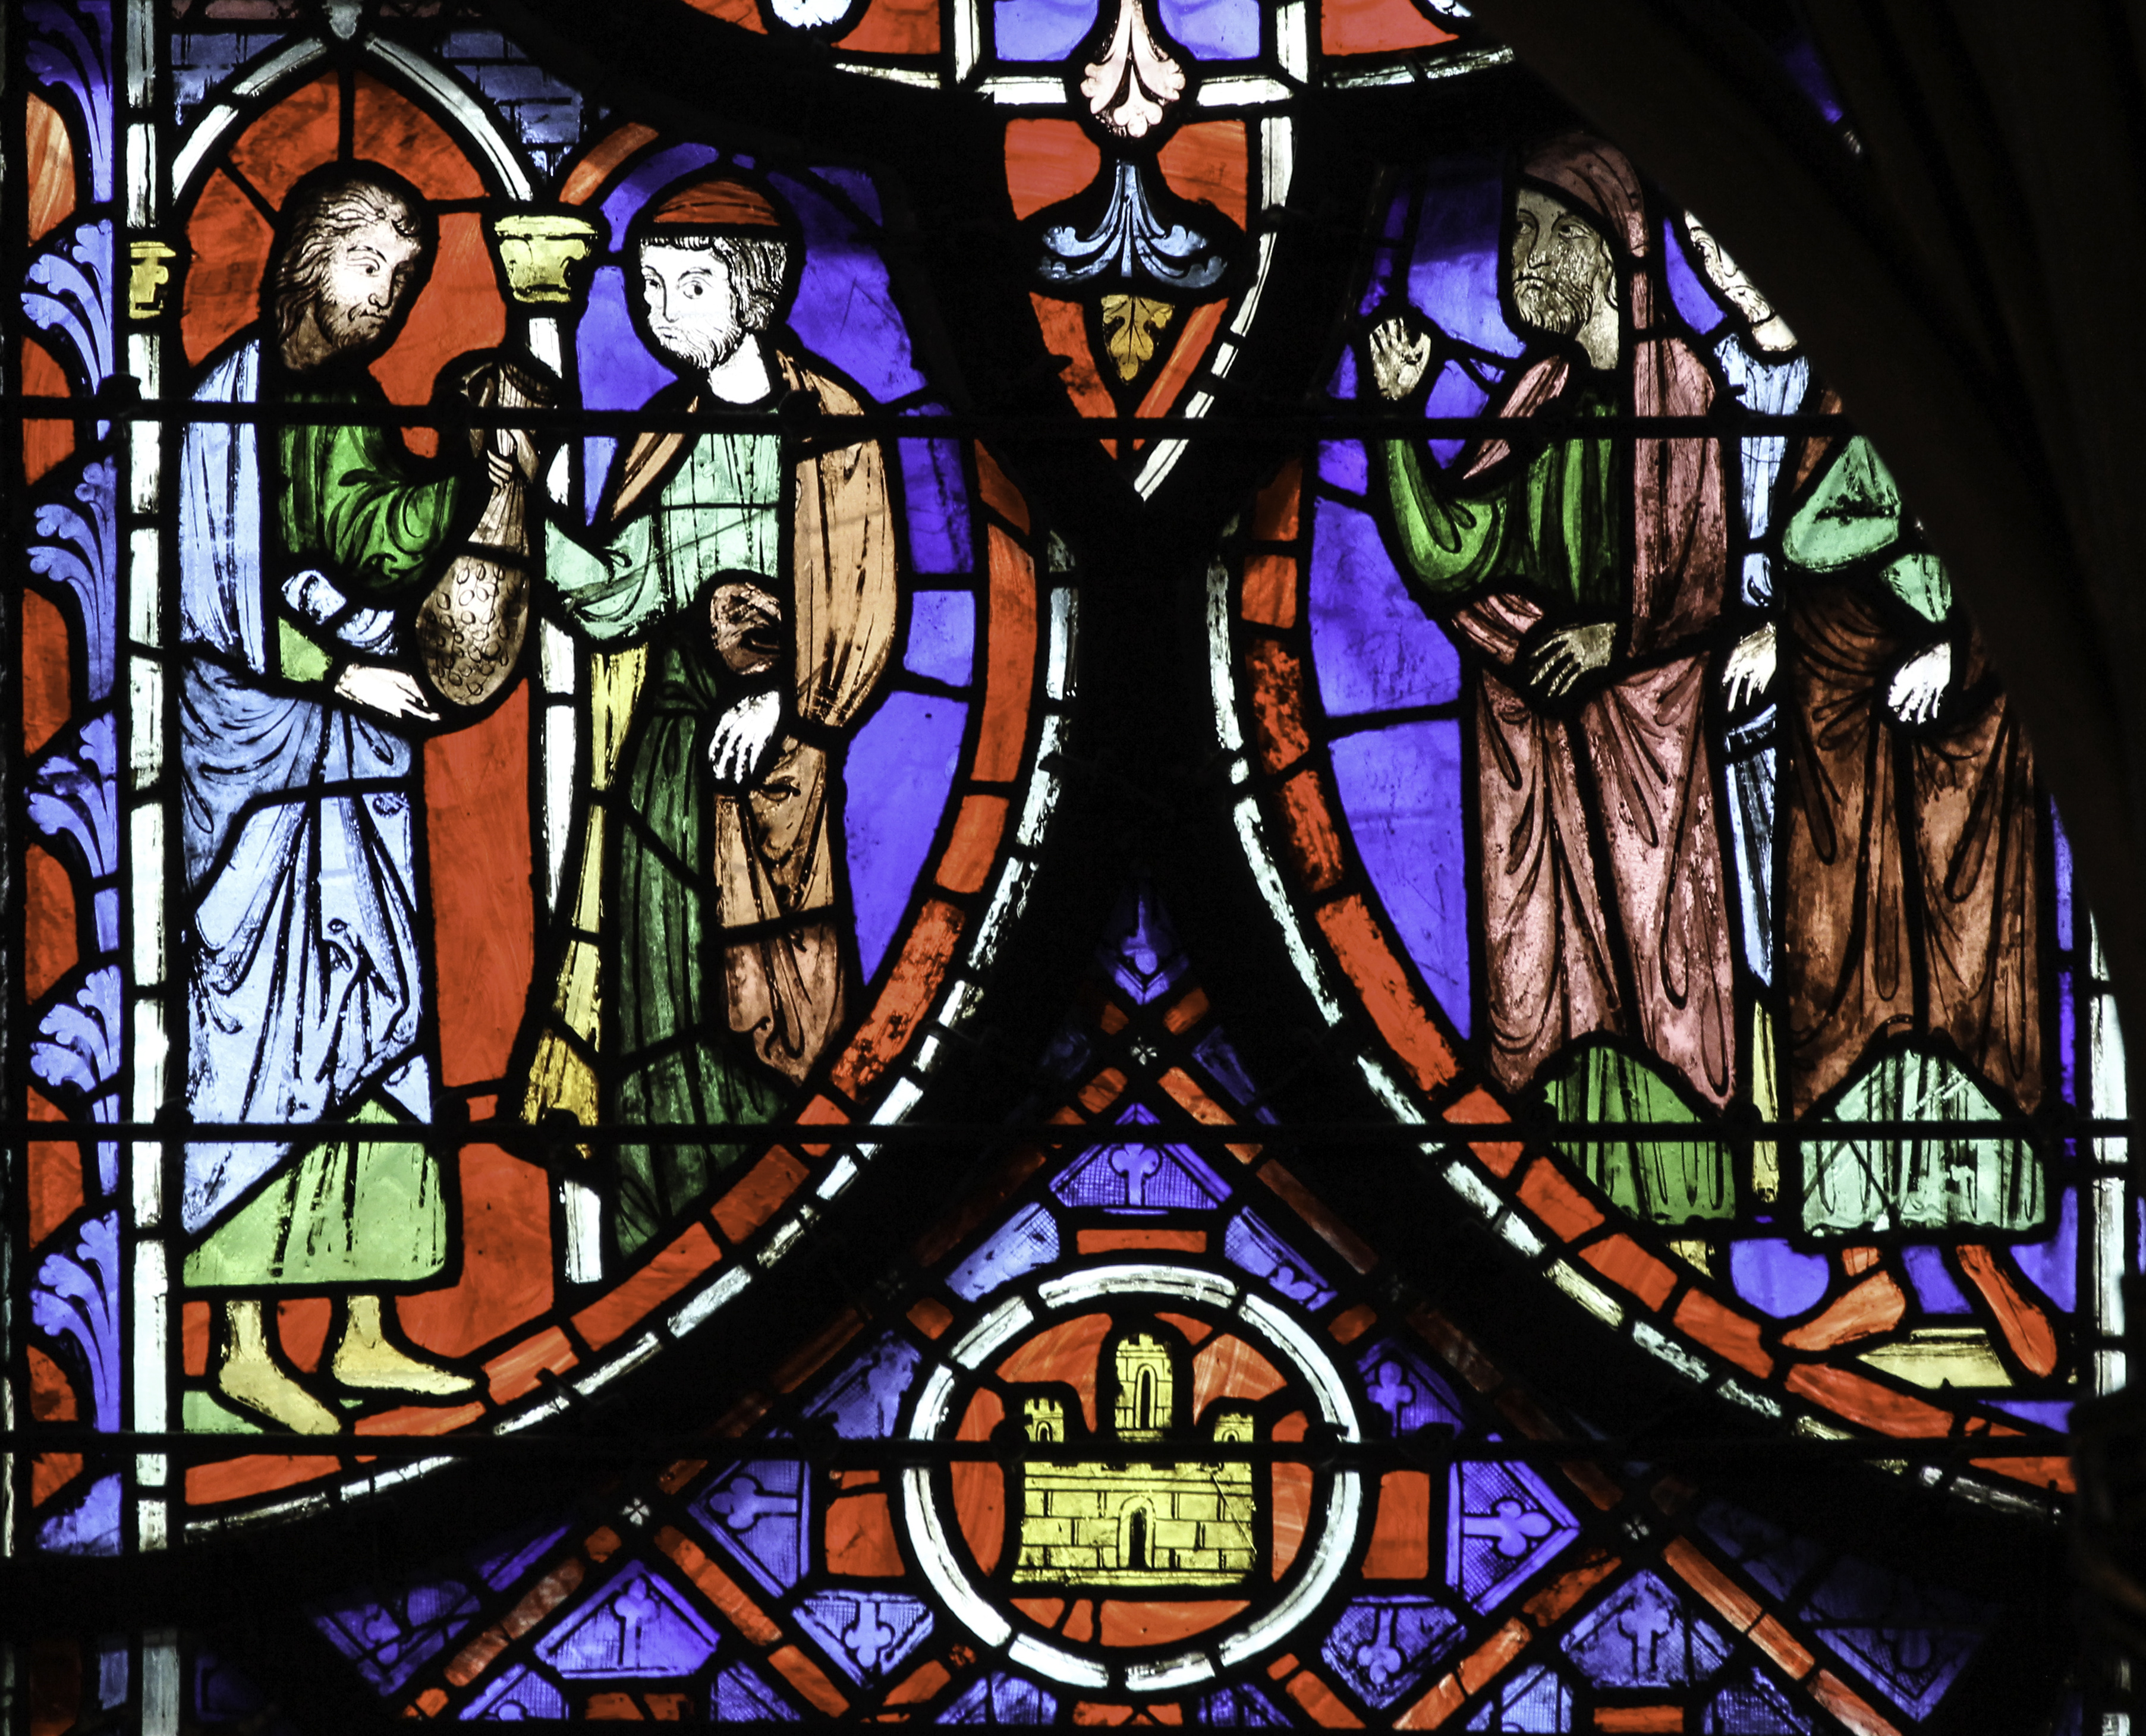 Stained glass detail from a window in the Sainte Chapelle, Paris, showing Judas handing over a bag of silver.